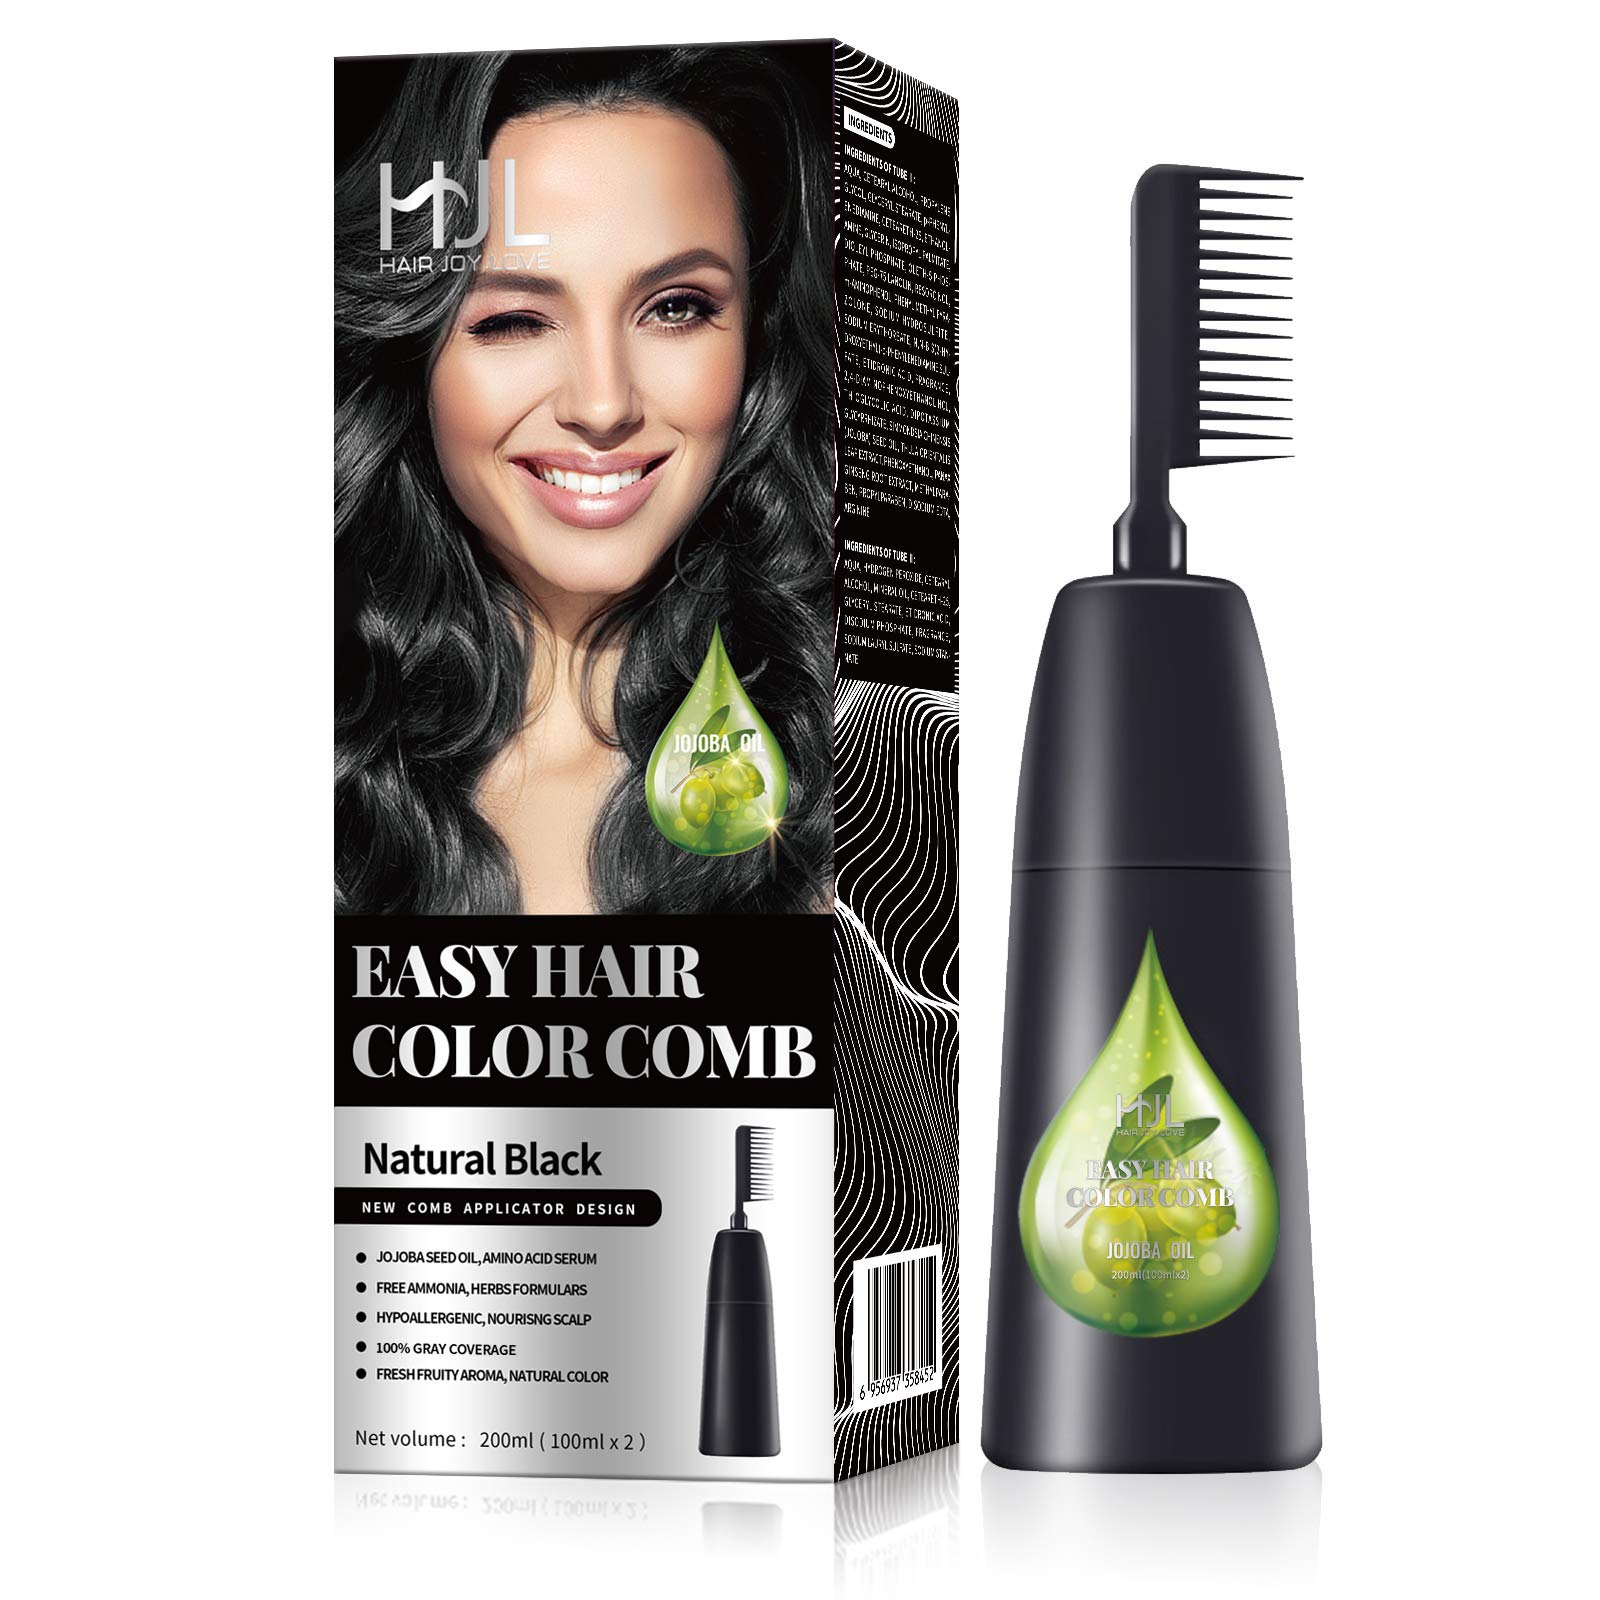 HJL Hair Color Ammonia-Free with Comb Applicator 100% Gray Coverage Hair Dye Cream Hair Coloring Kit, Natural Black, Pack of 1